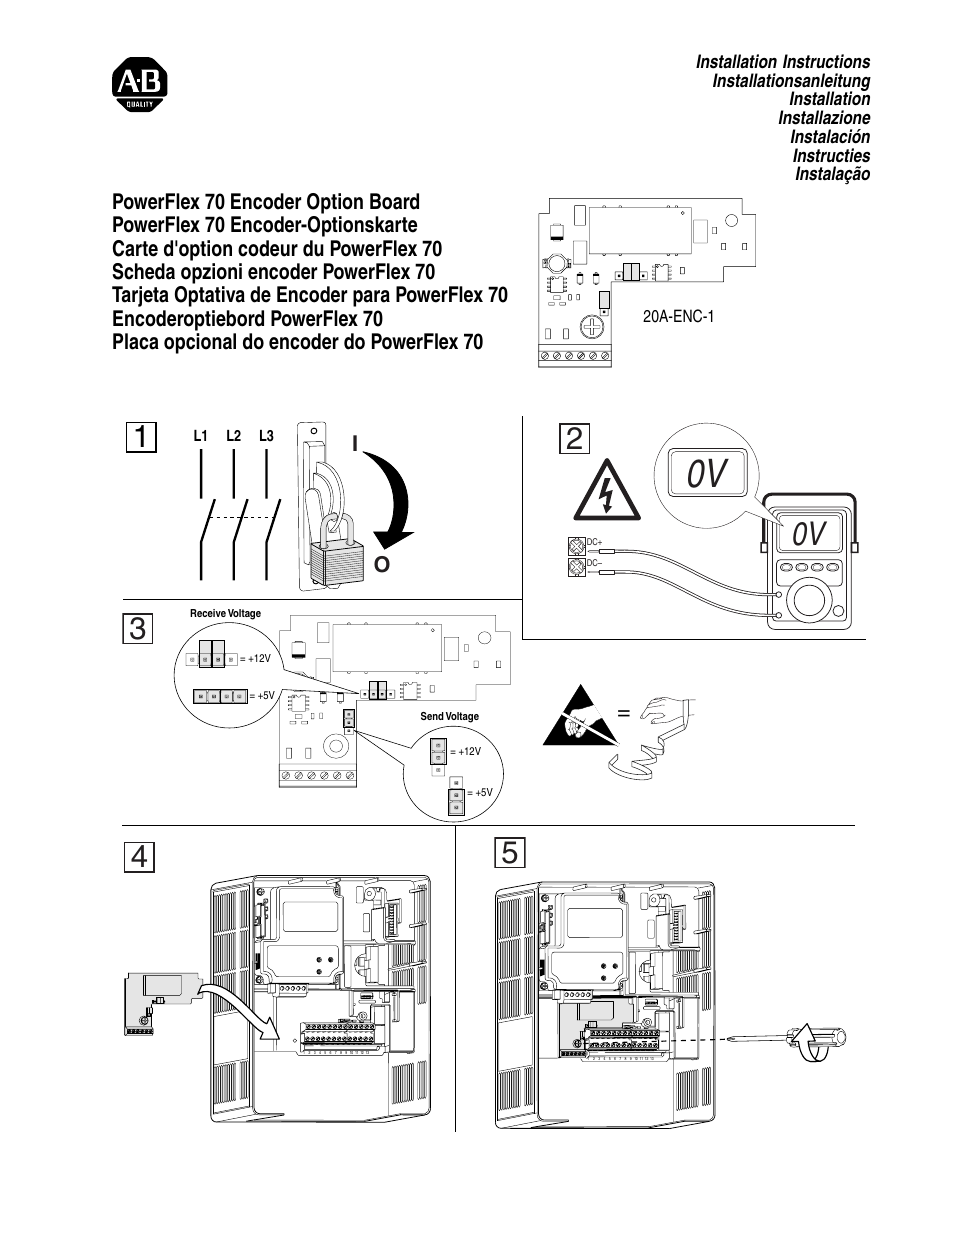 rockwell automation 20a powerflex 70 encoder kit page1 rockwell automation 20a powerflex 70 encoder kit user manual 2 pages ab powerflex 70 wiring schematic at crackthecode.co